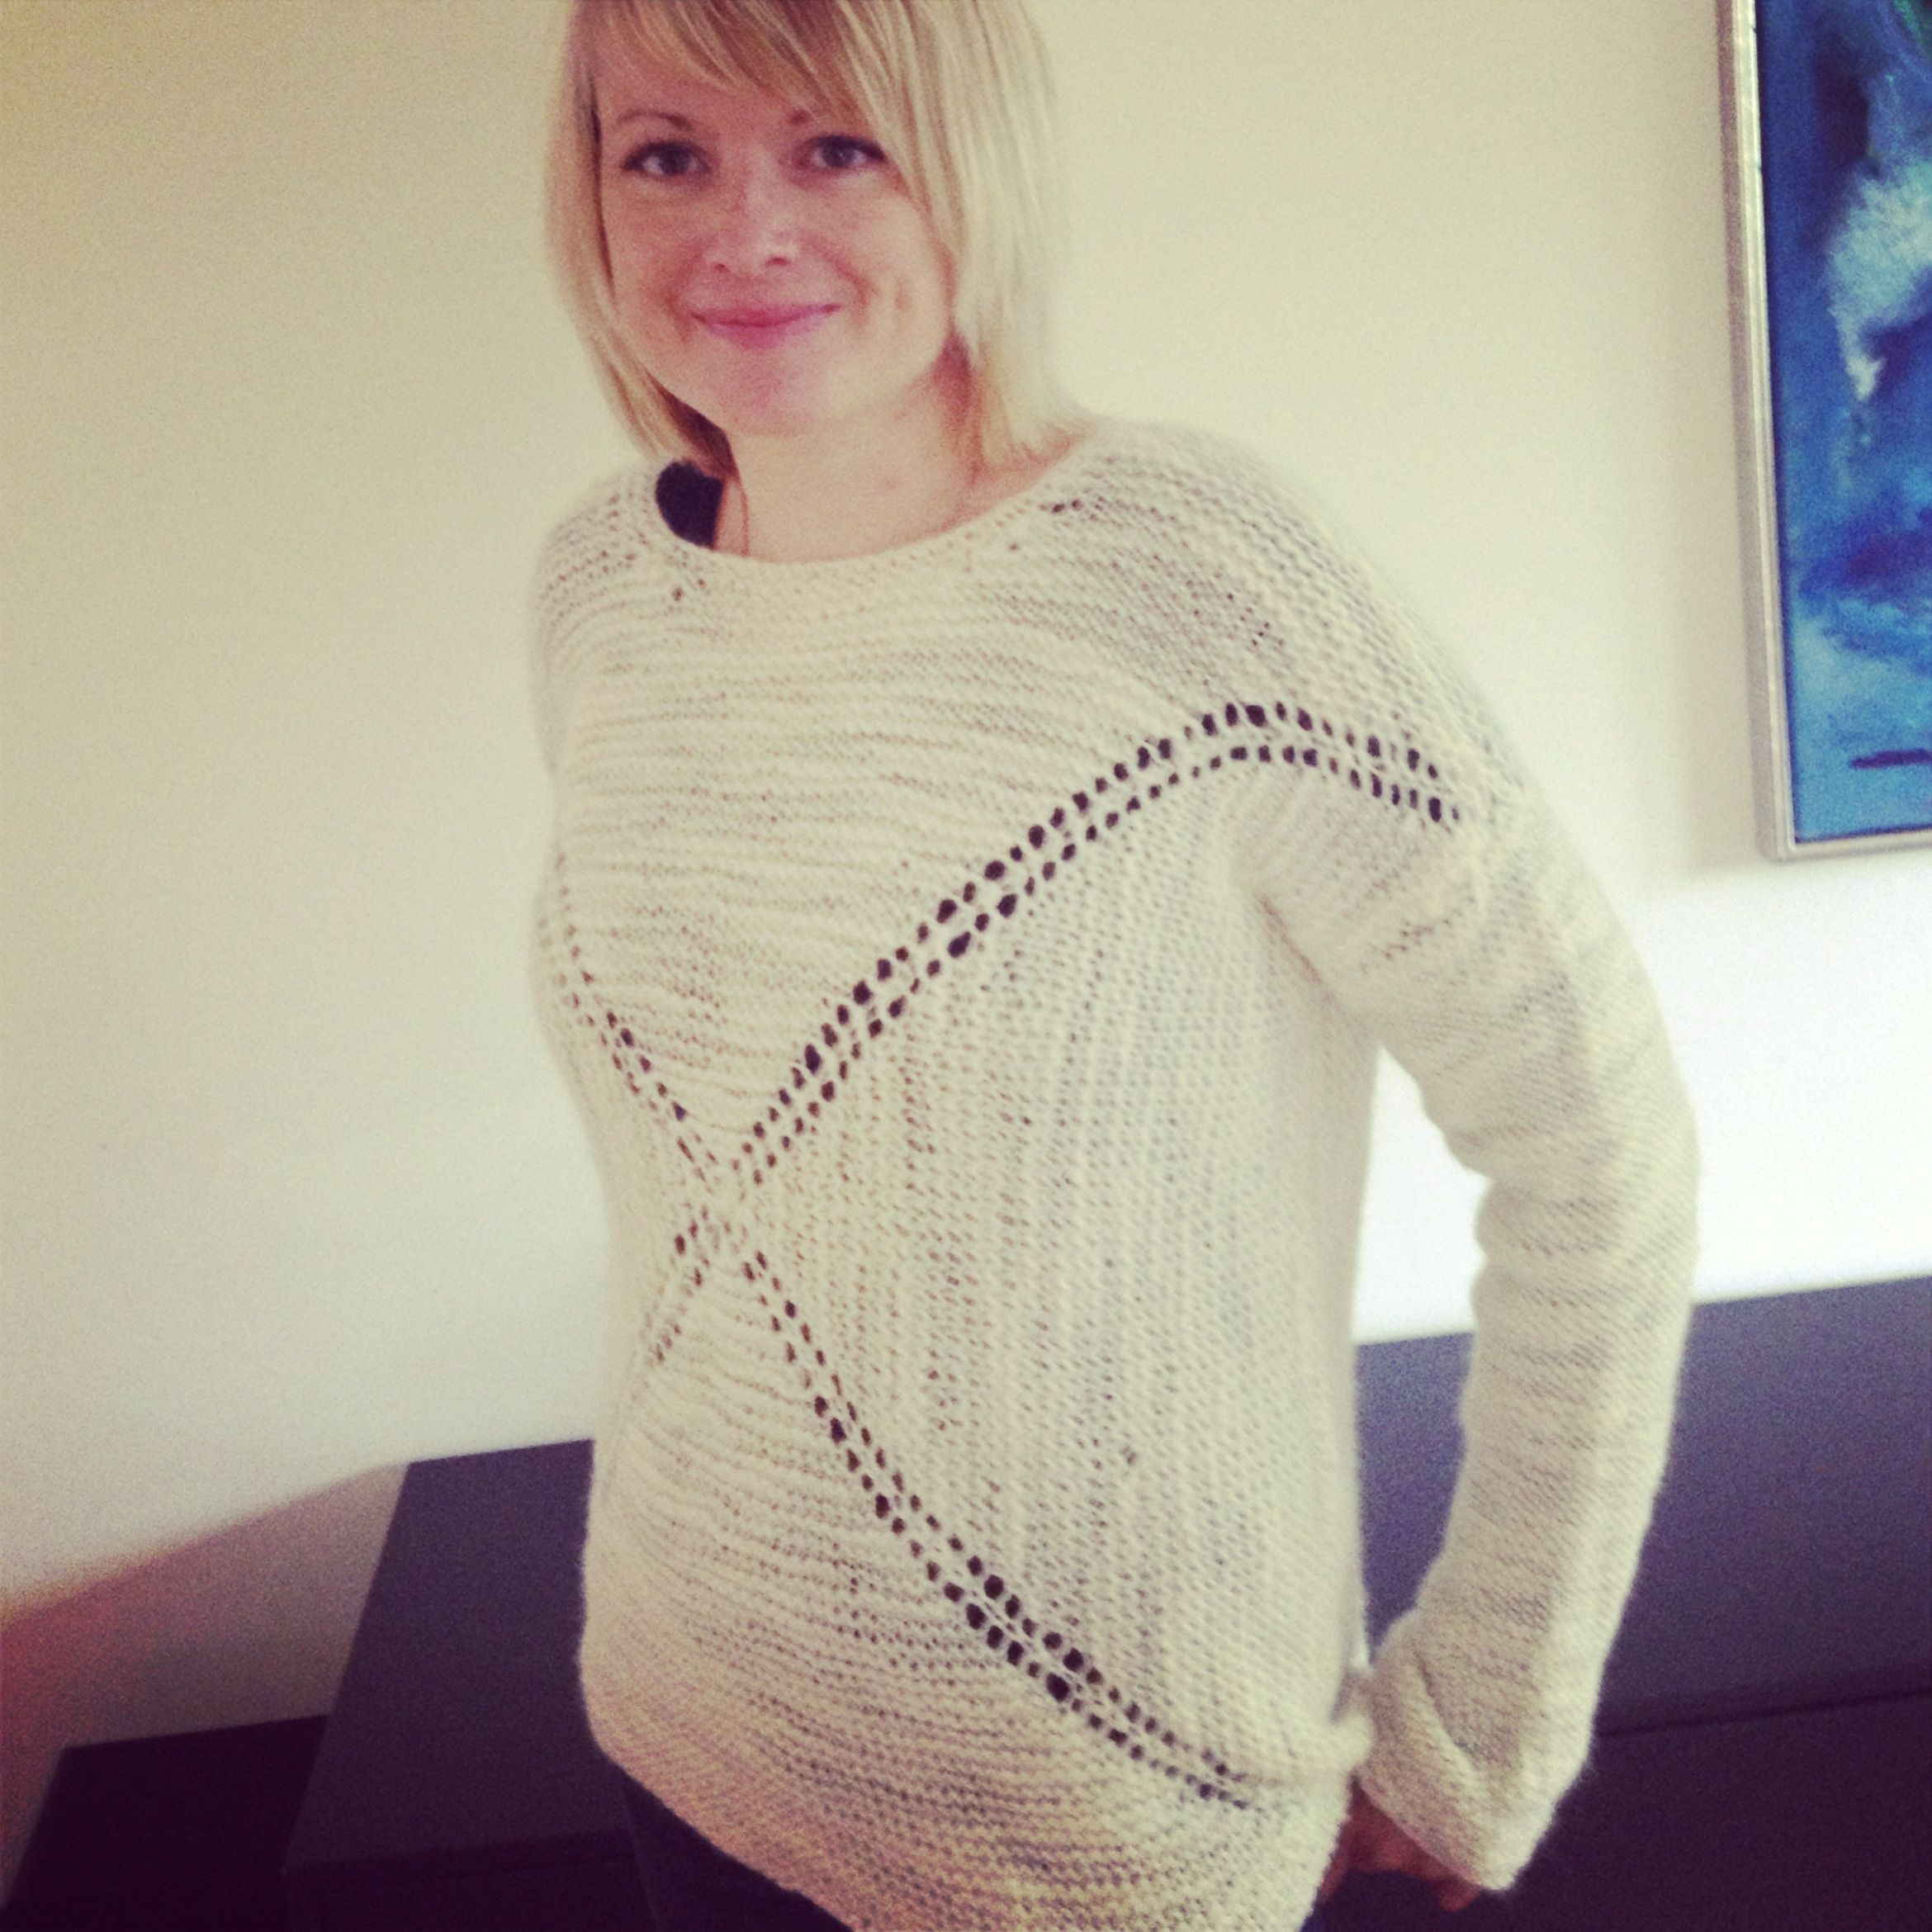 dropsdesign Hugs & Kisses sweater in #dly3 | DROPS Loves You ...